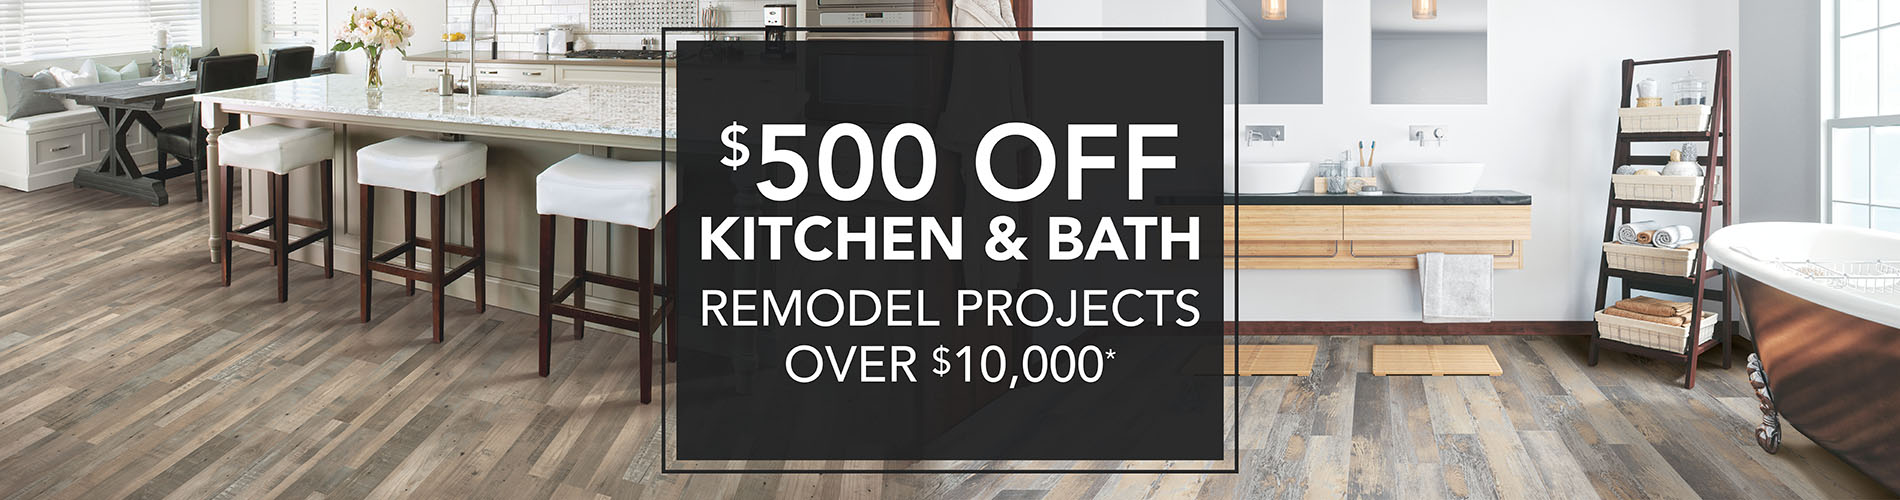 Take $500 off of kitchen and bath remodeling projects that are over $10,000. Sale at Flooring USA